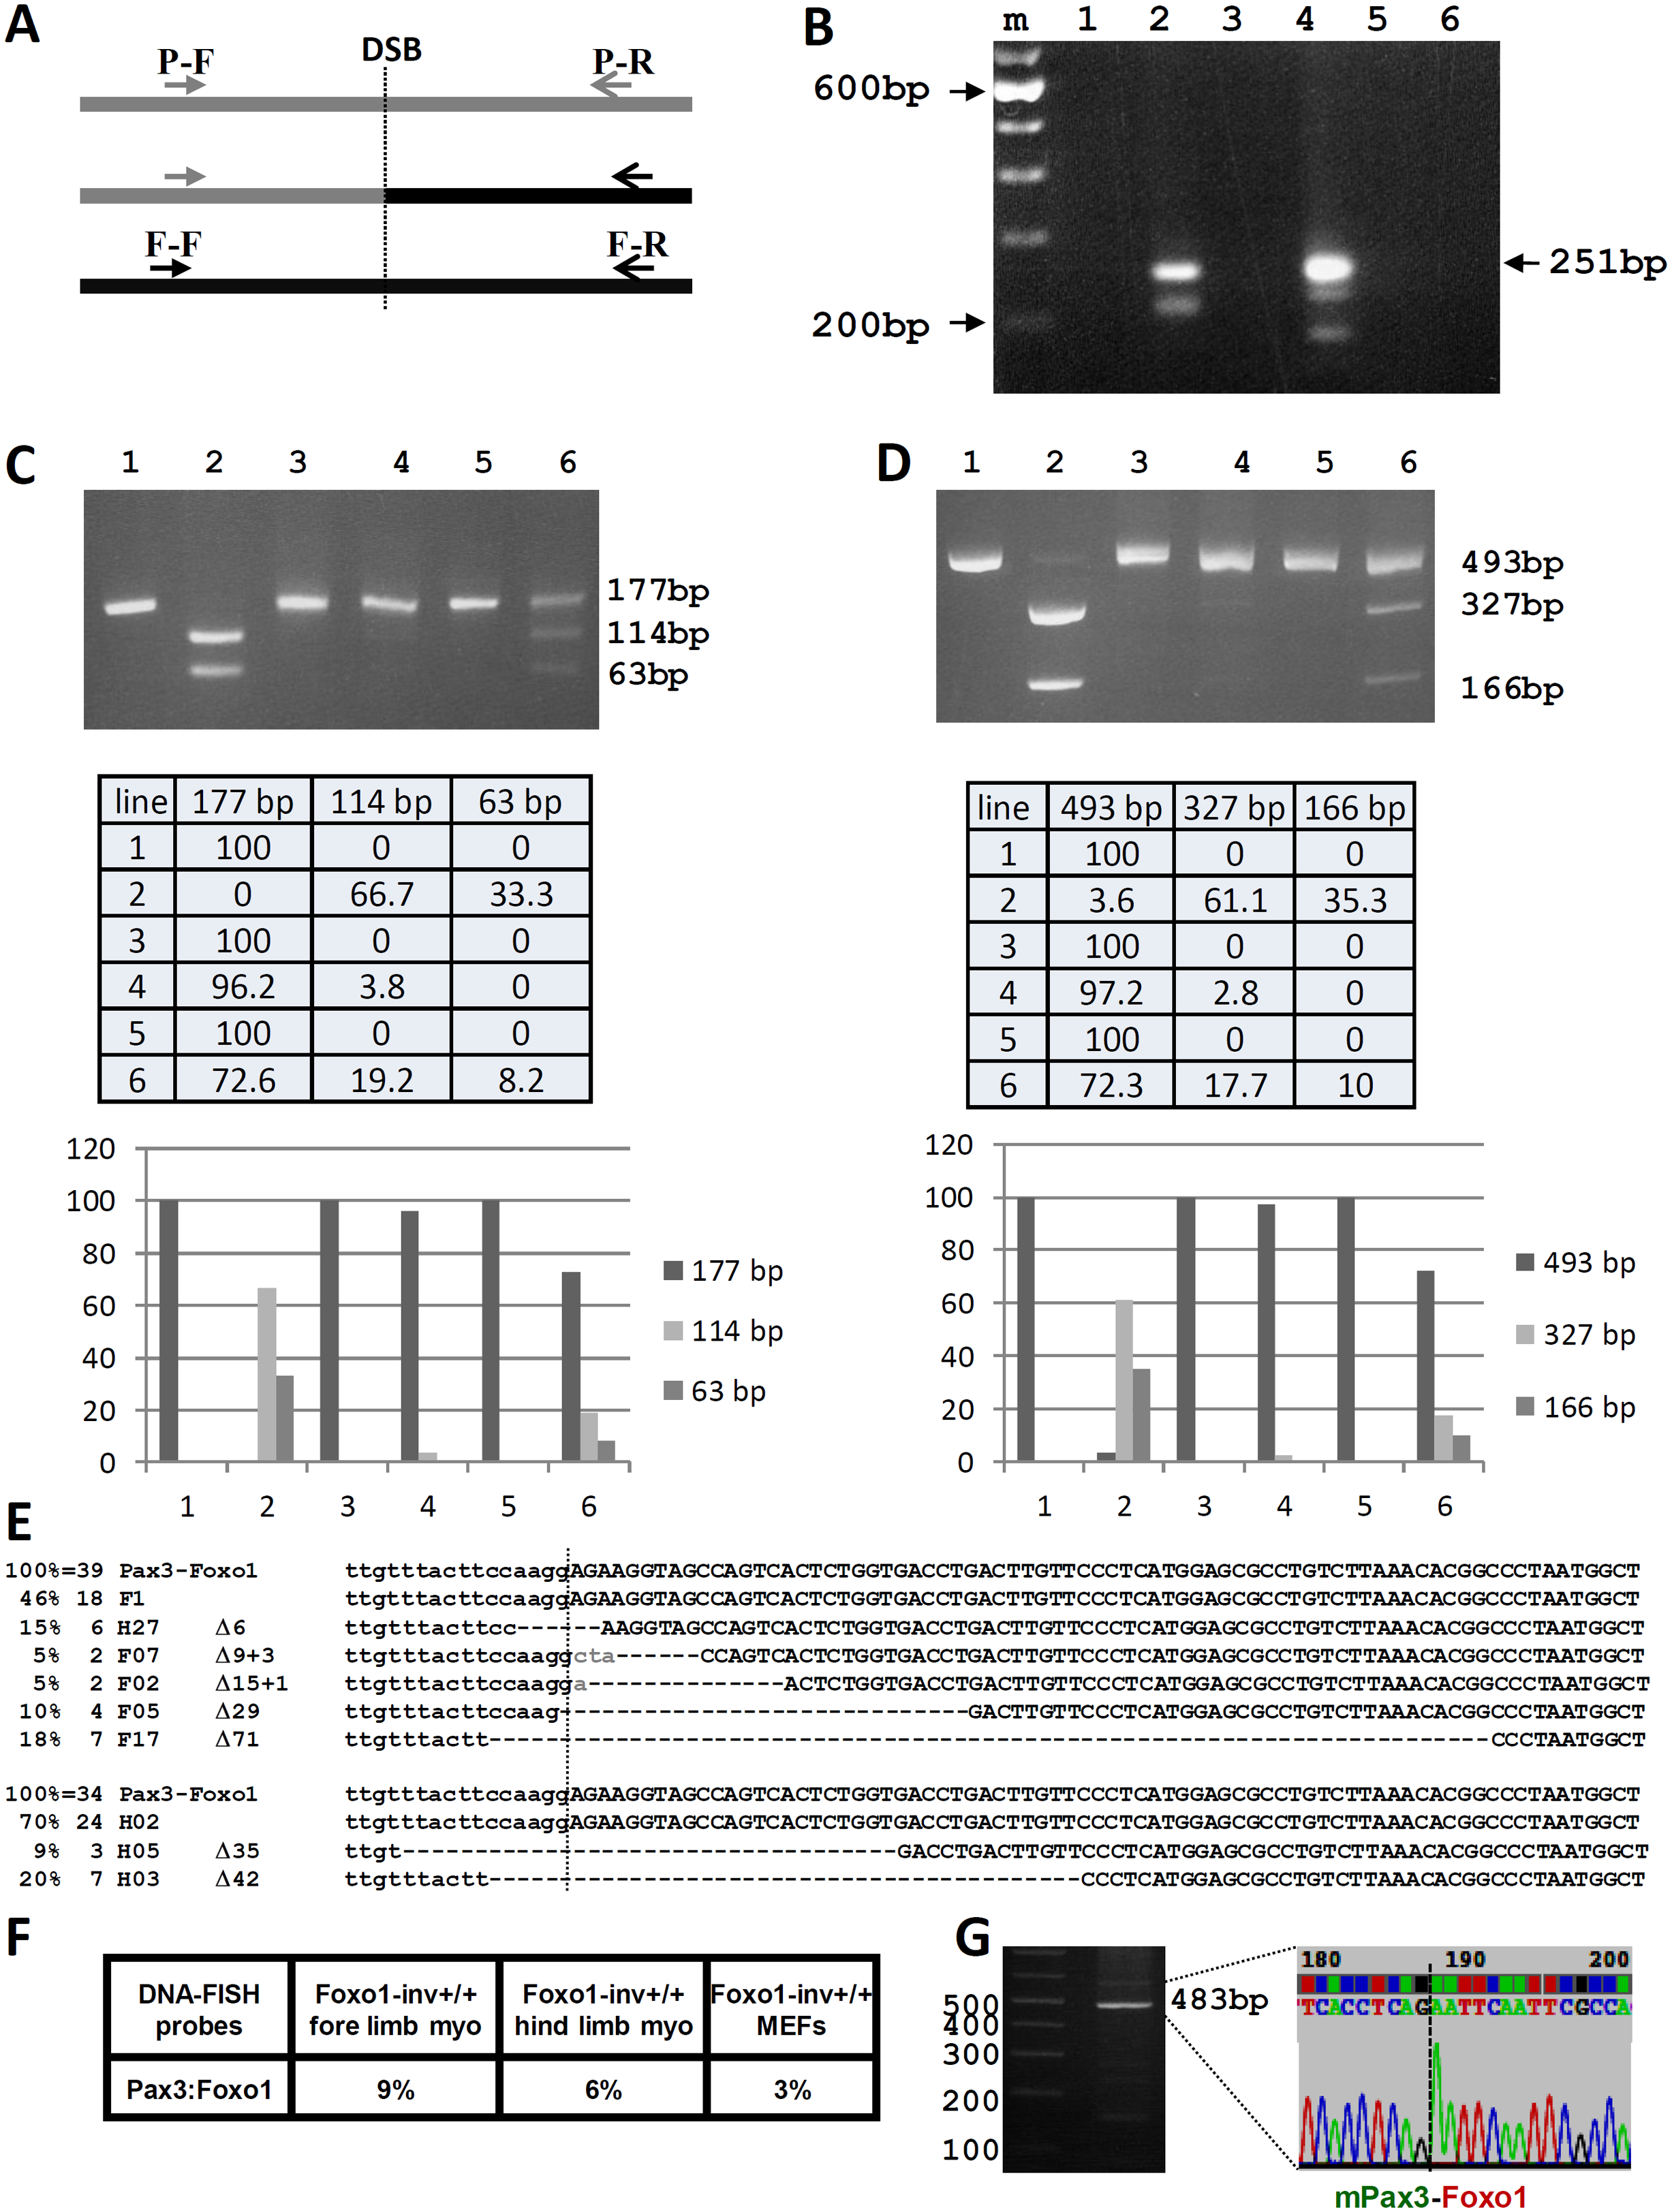 Analysis of the CRISPR-Cas9 induced t(1;3) in Foxo1-inv<sup>+/+</sup> myoblasts.